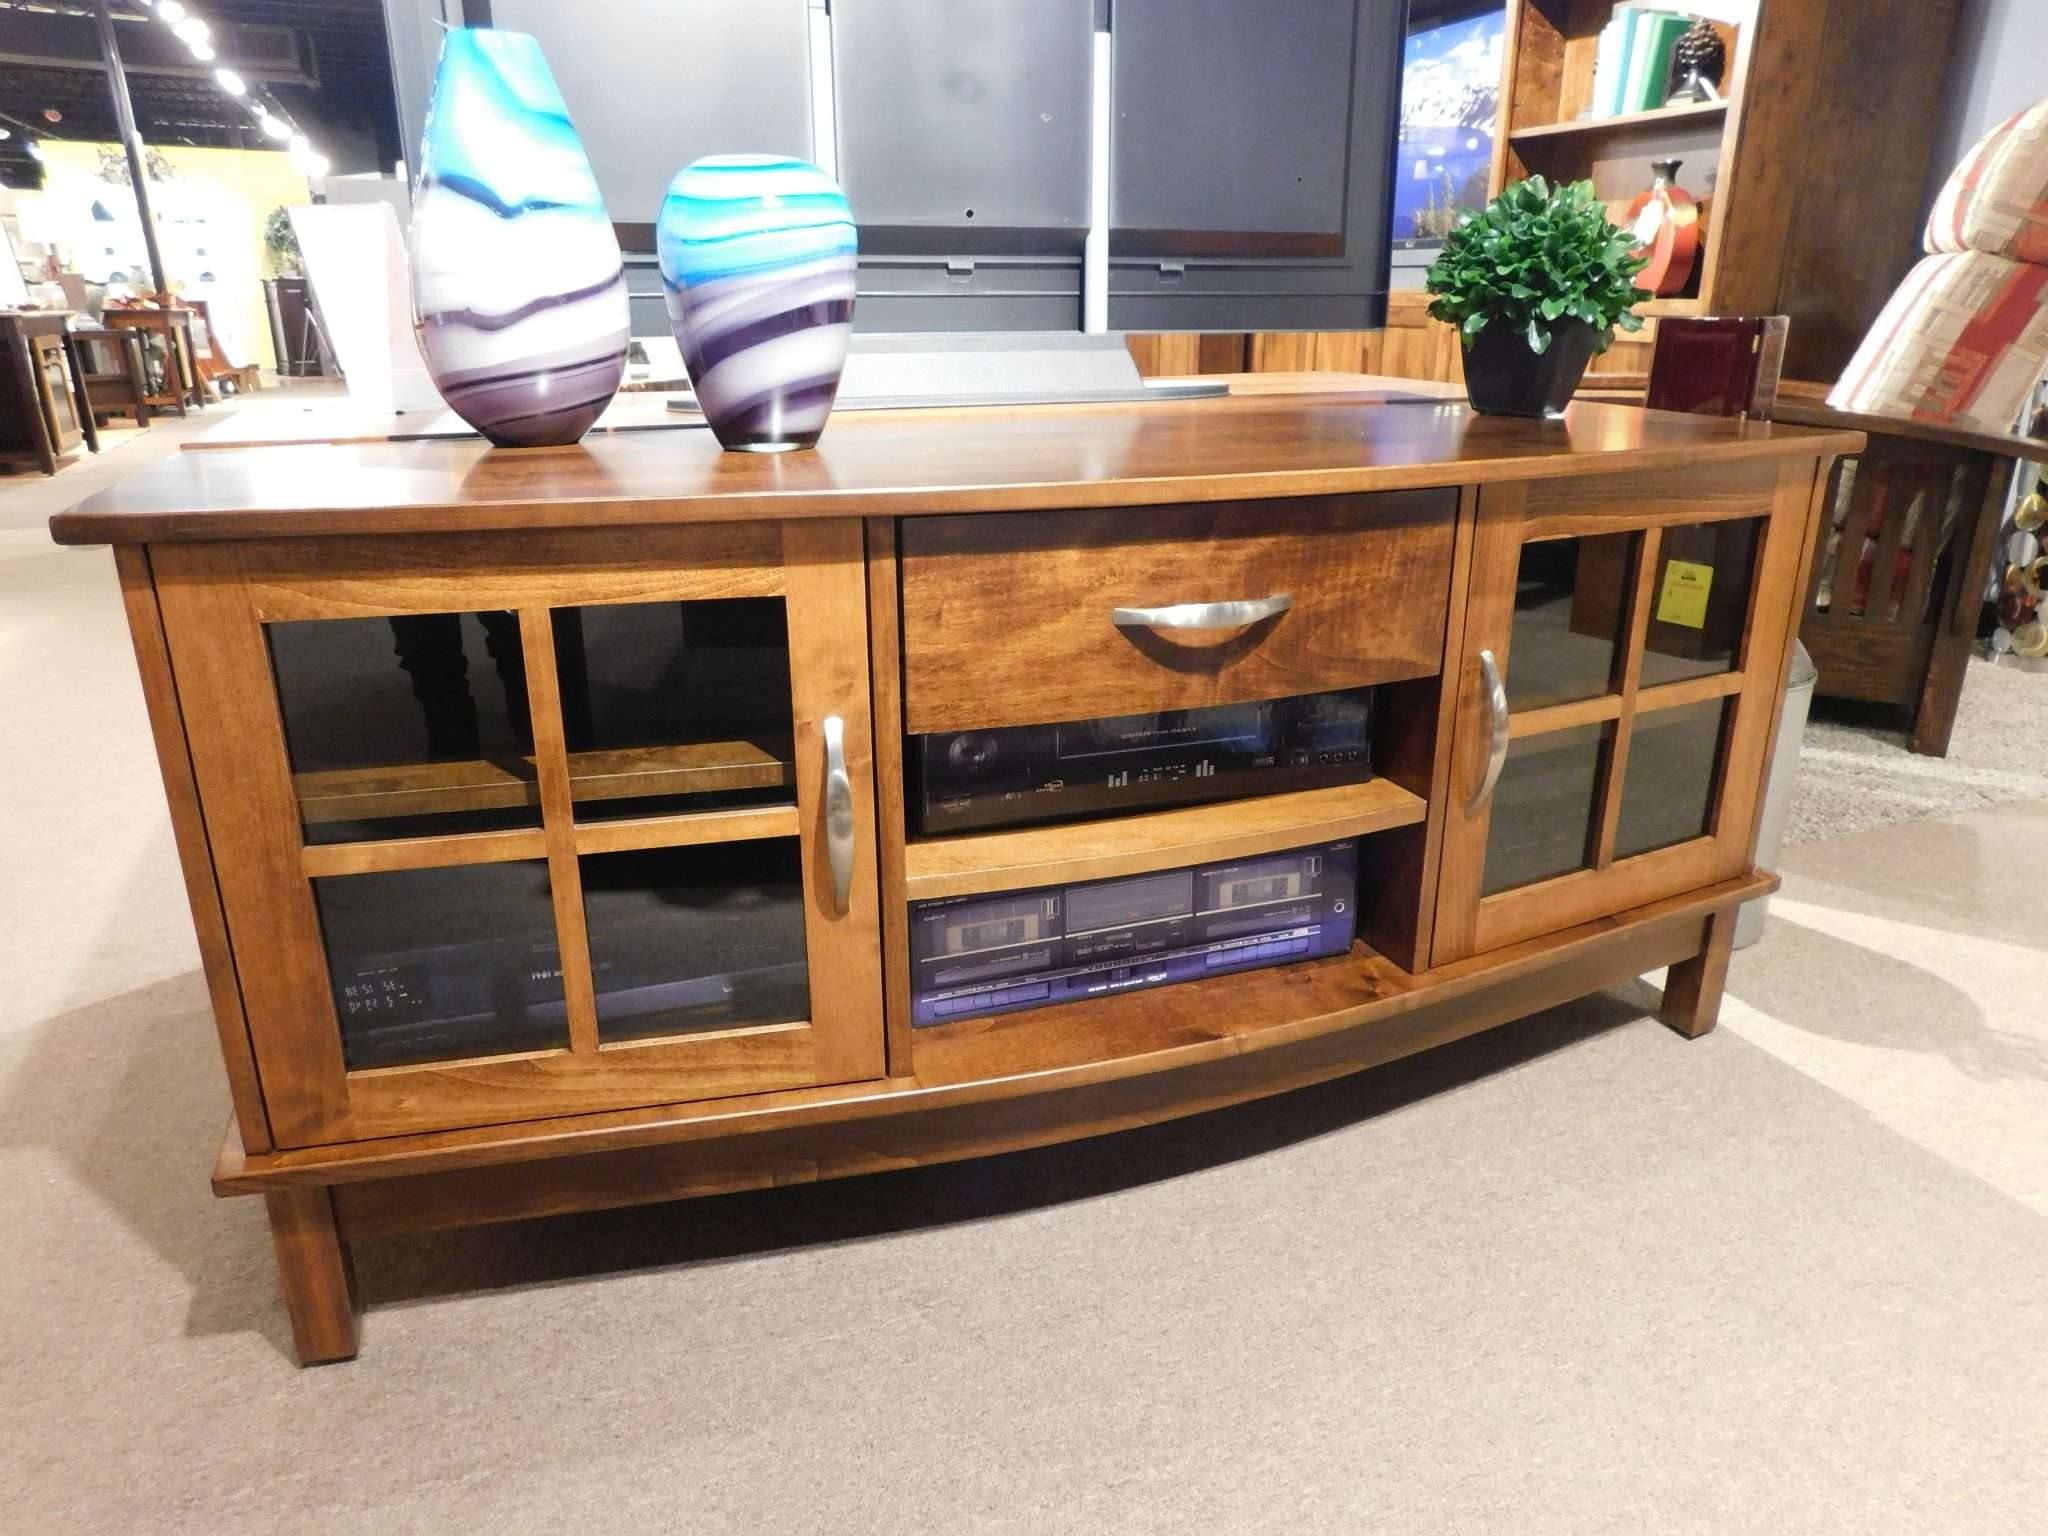 Perfect Maple Tv Stand 65 In Modern Home Decor Inspiration With In Maple Tv Stands (View 6 of 15)